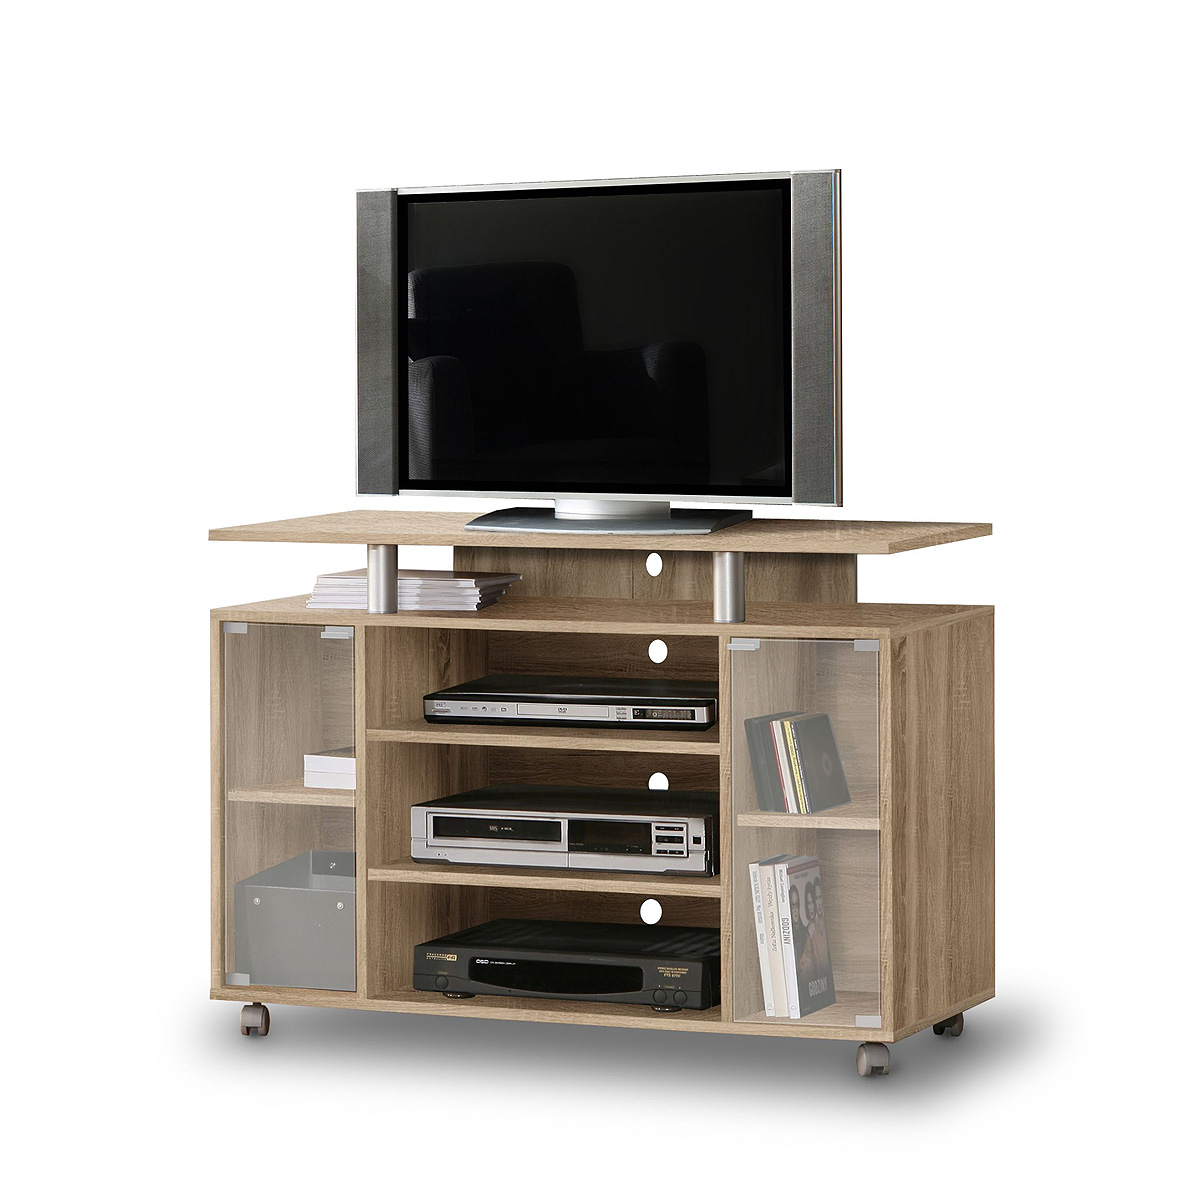 tv schrank rtv rack tv board fernsehschrank in sonoma eiche auf rollen ebay. Black Bedroom Furniture Sets. Home Design Ideas